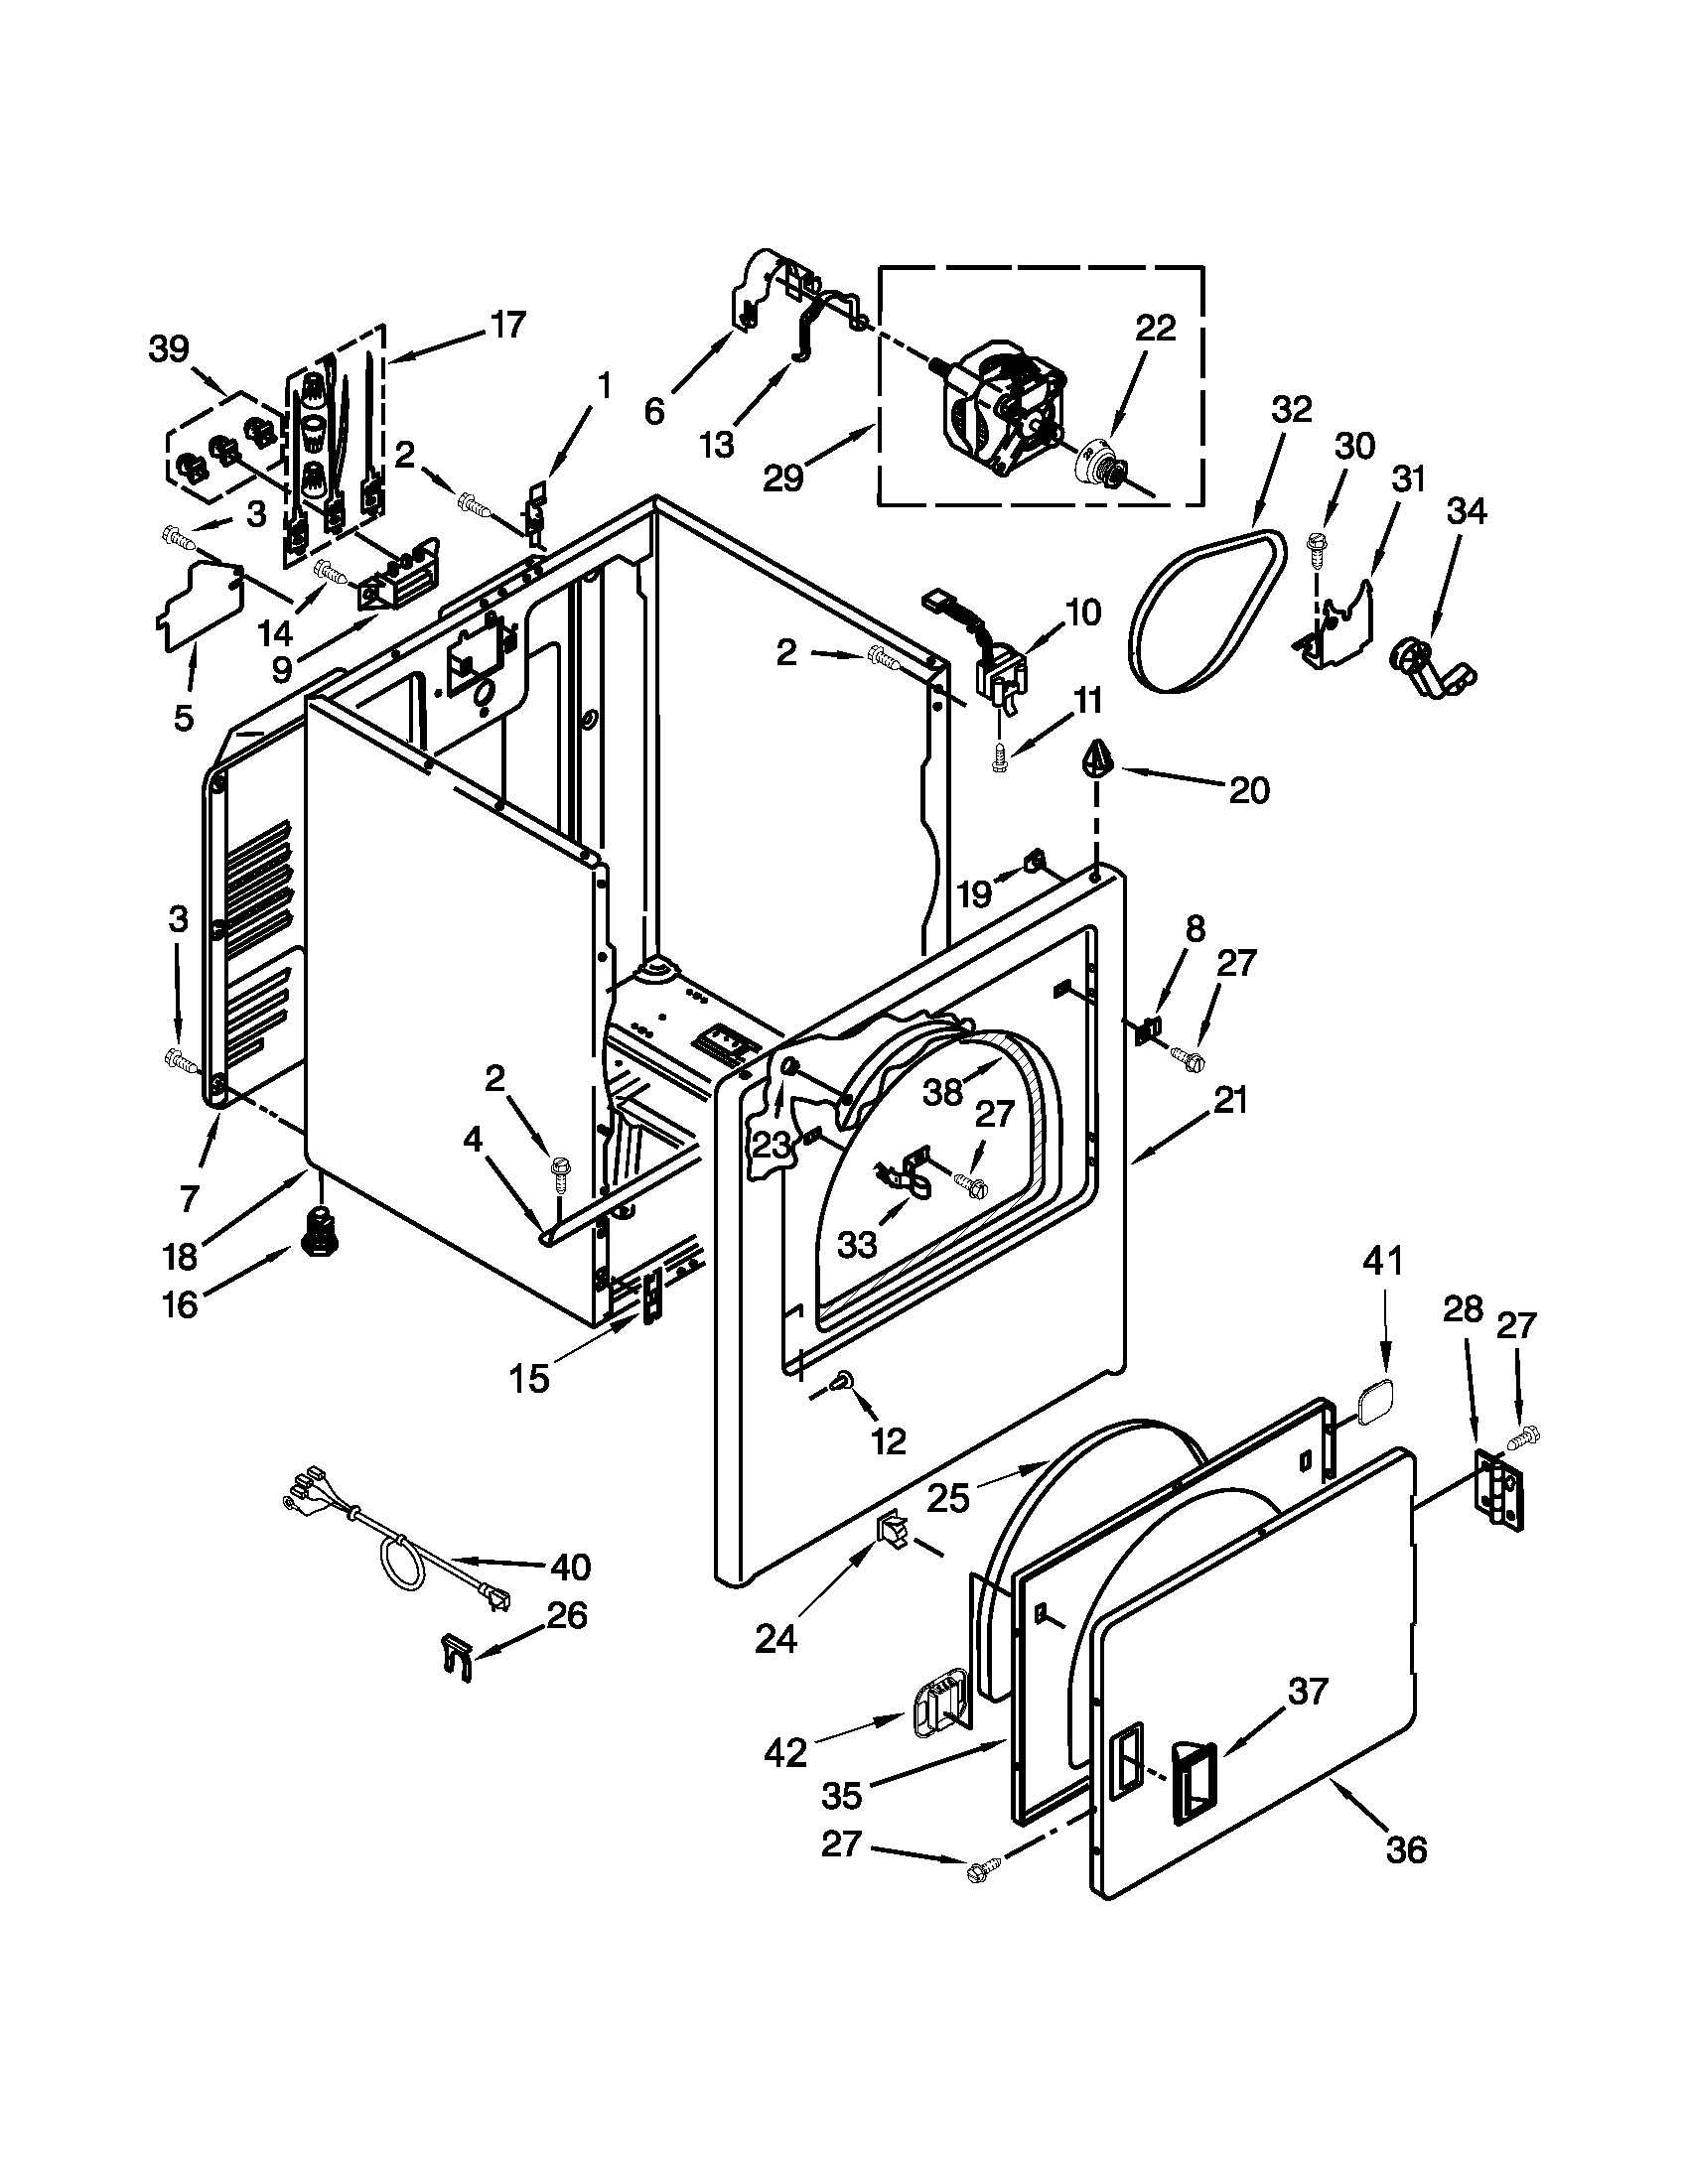 wiring diagram for amana dryer,